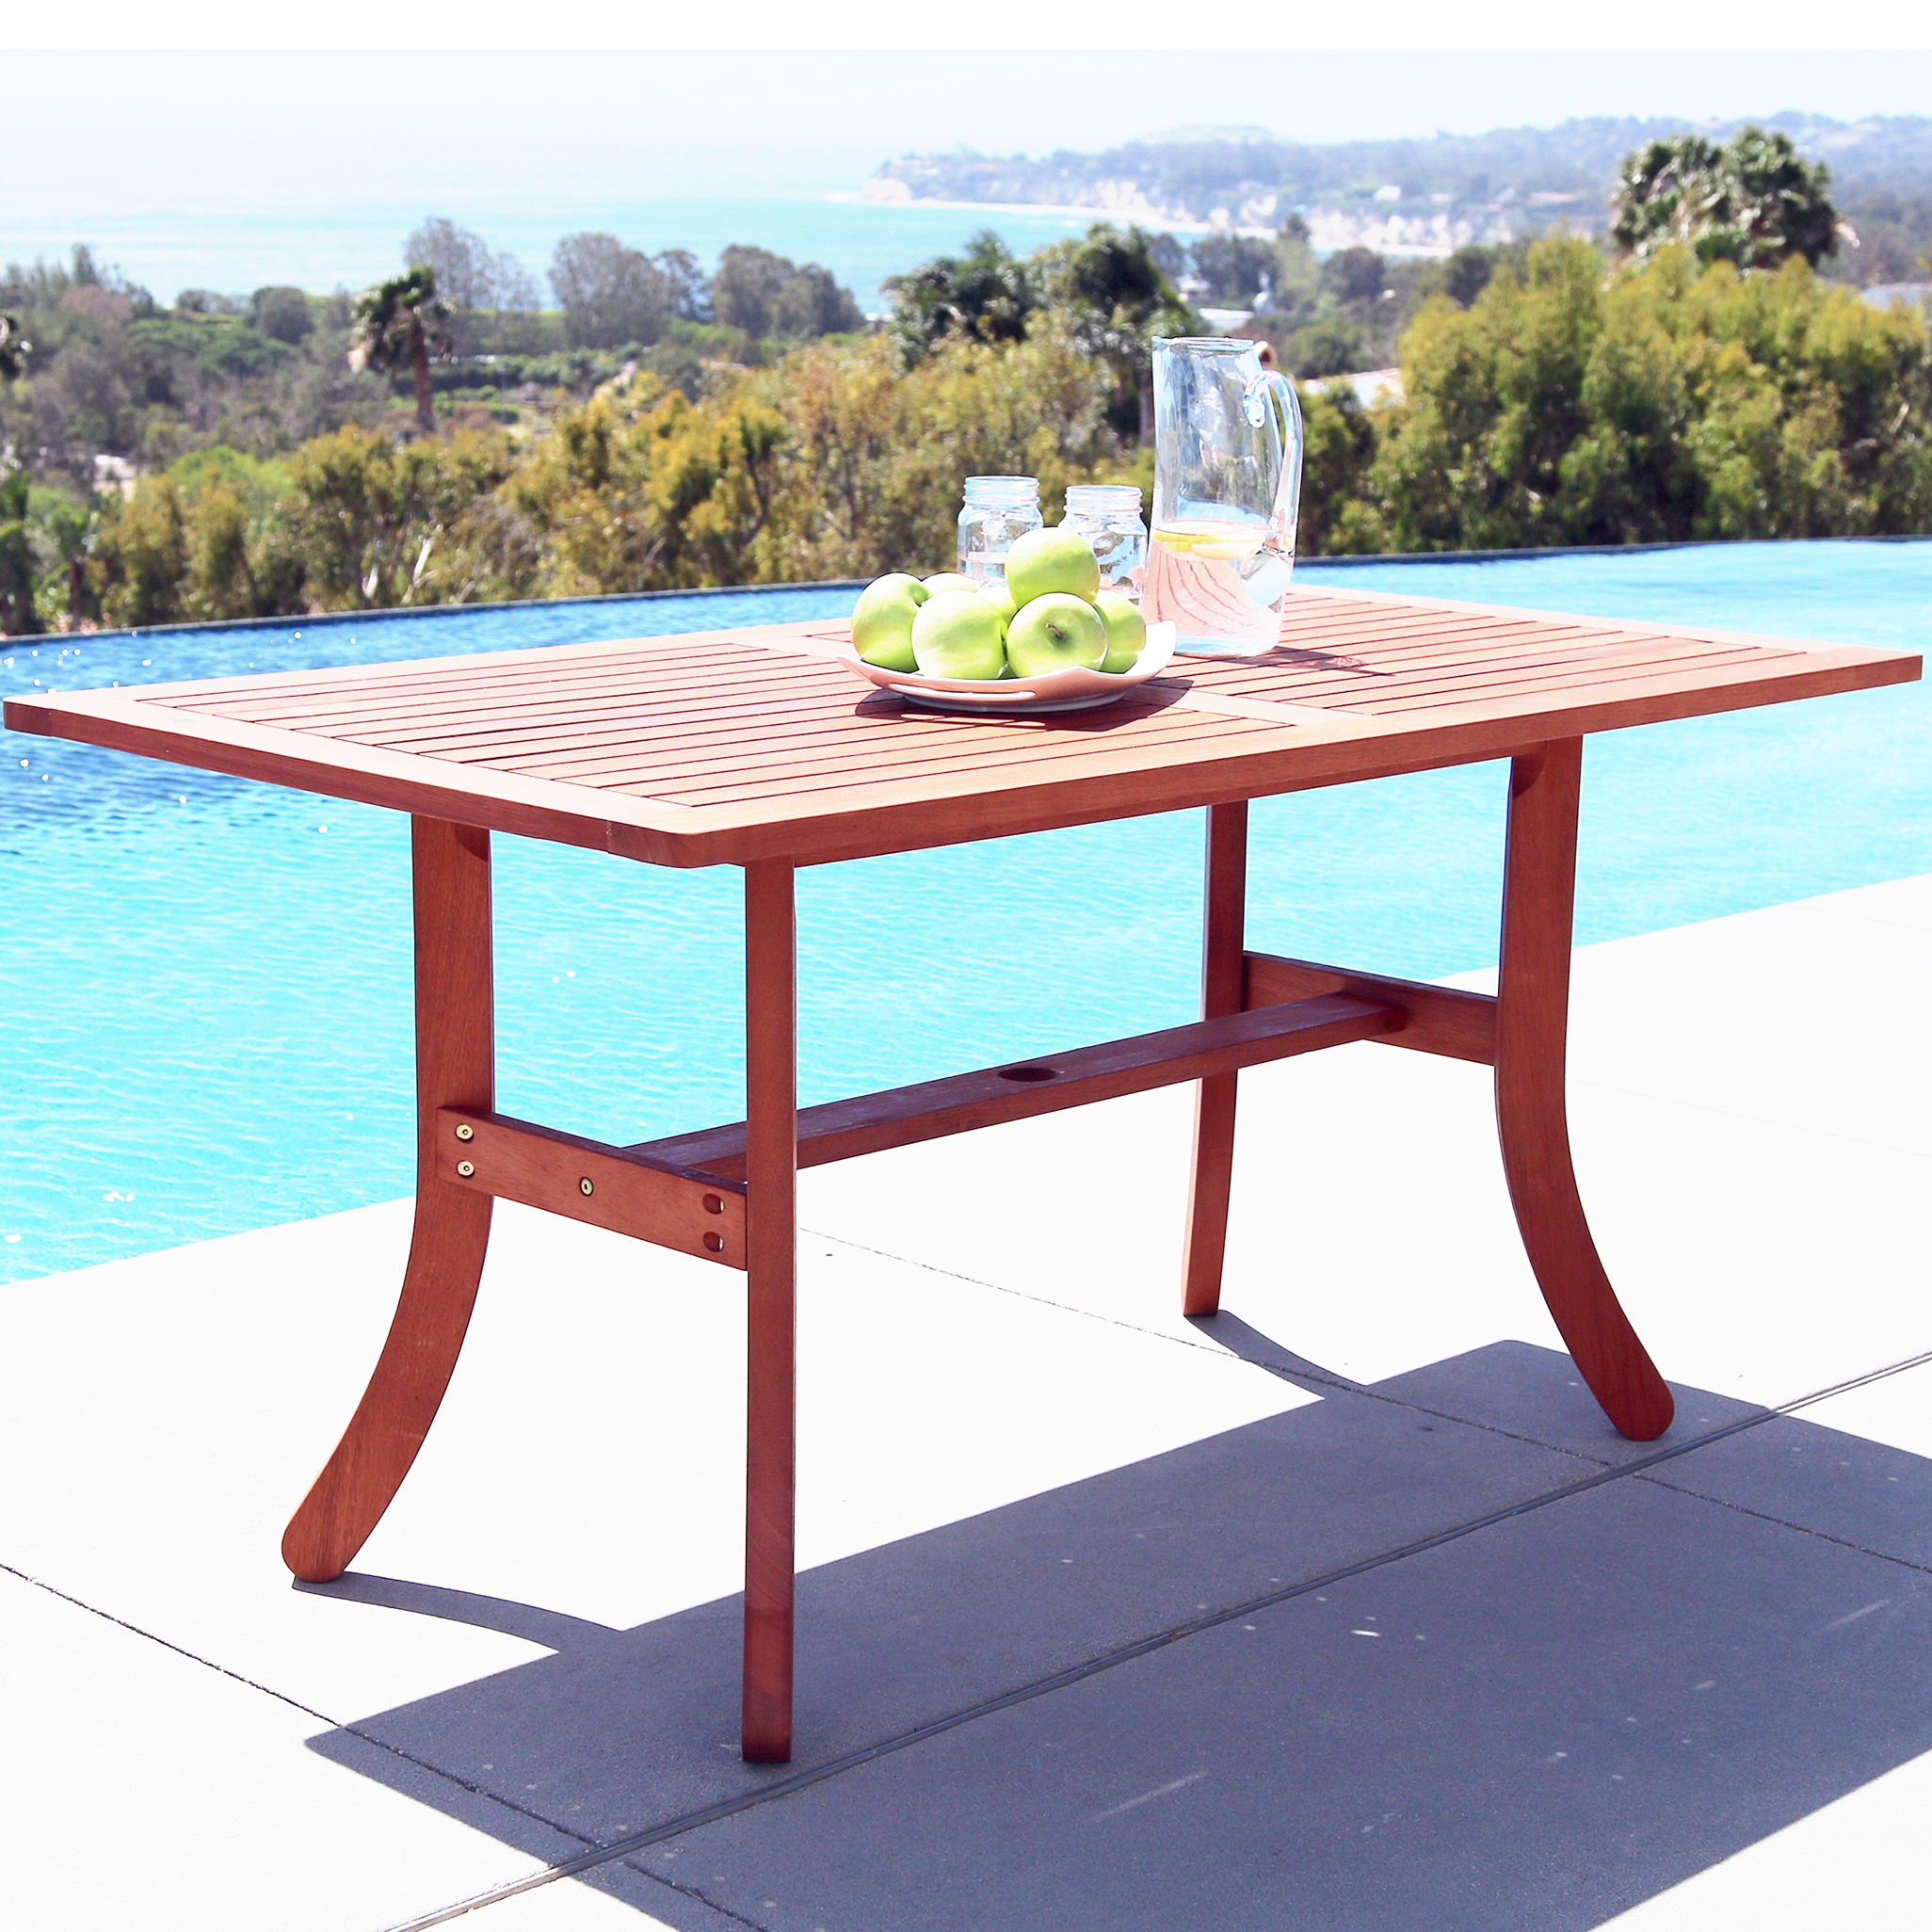 Malibu Outdoor Rectangular Dining Table with Curvy Legs